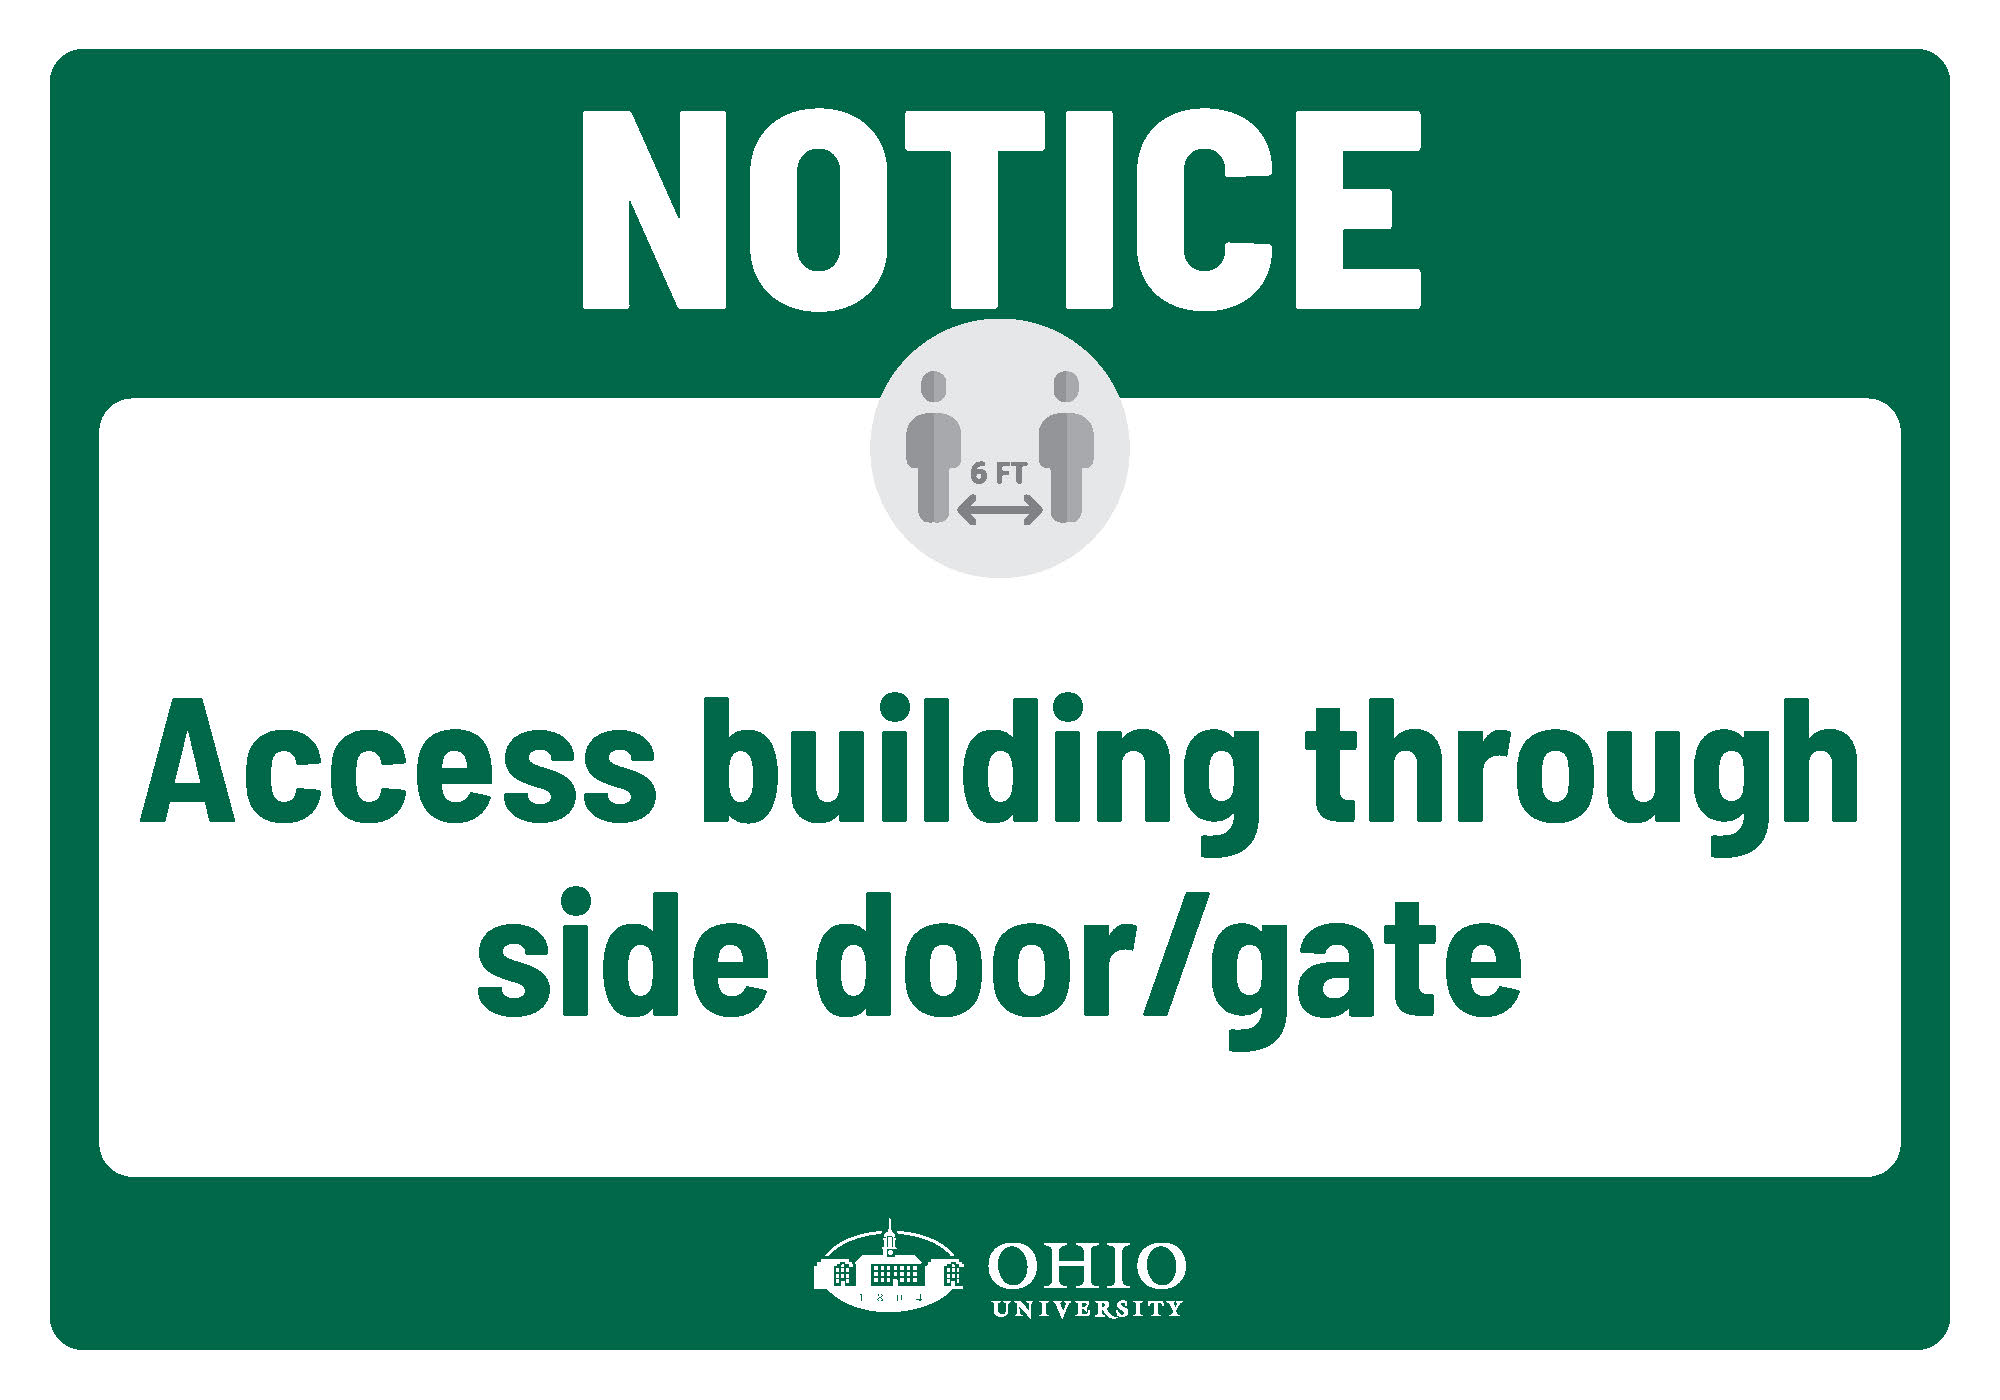 Sign that says: Notice. Access building through side door/gate